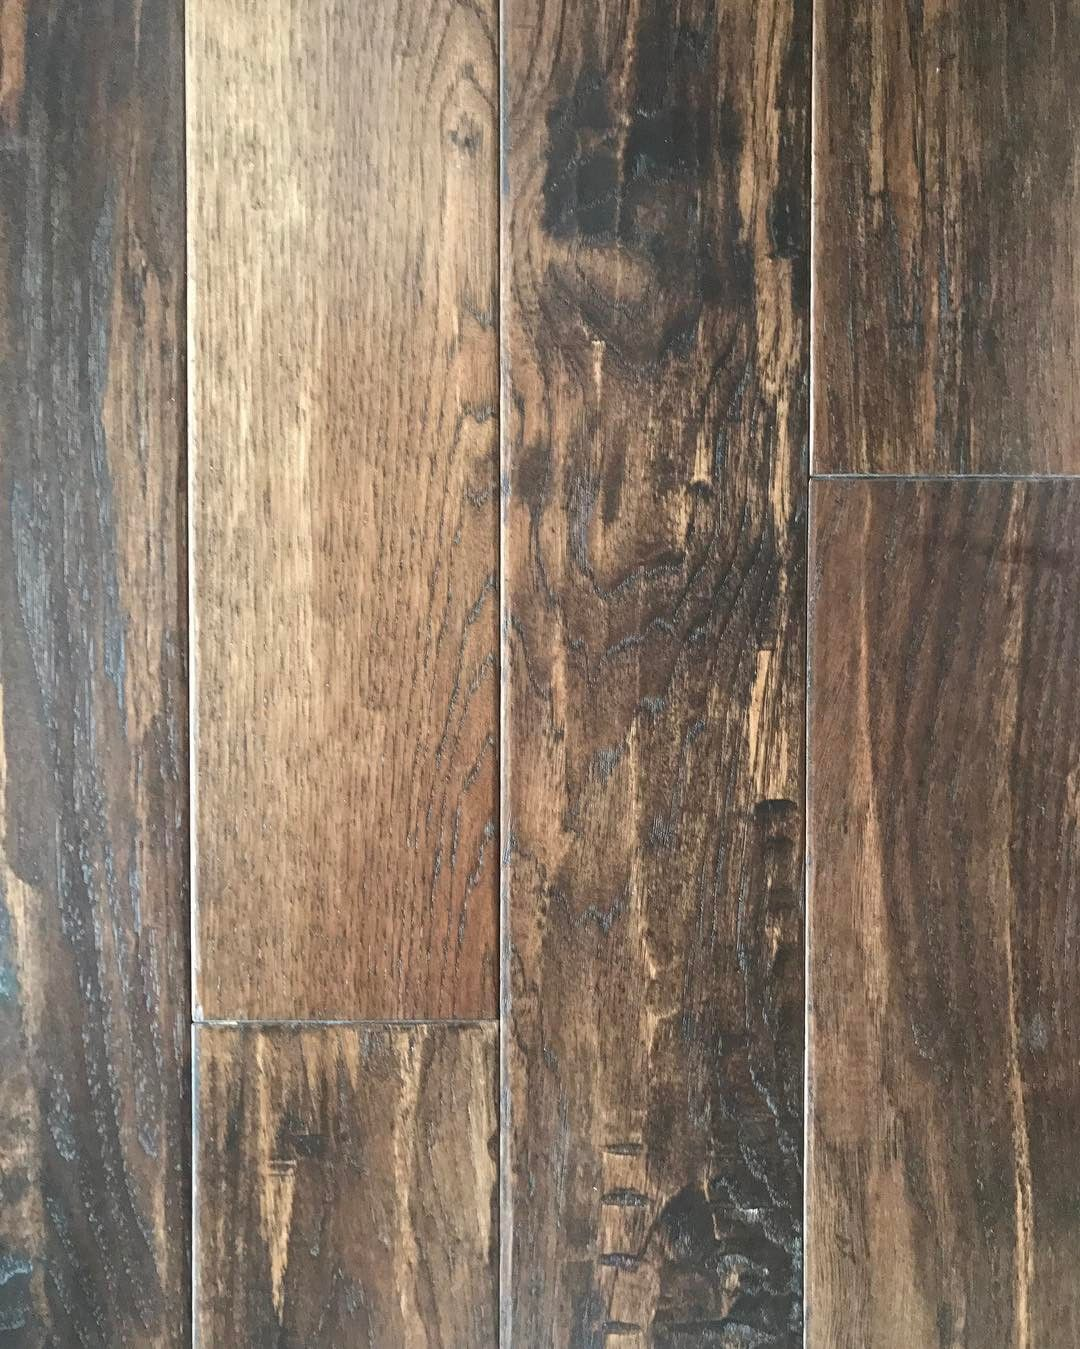 American scrape hickory river house width is 5 inches hardwood not engineered flooring by armstrong